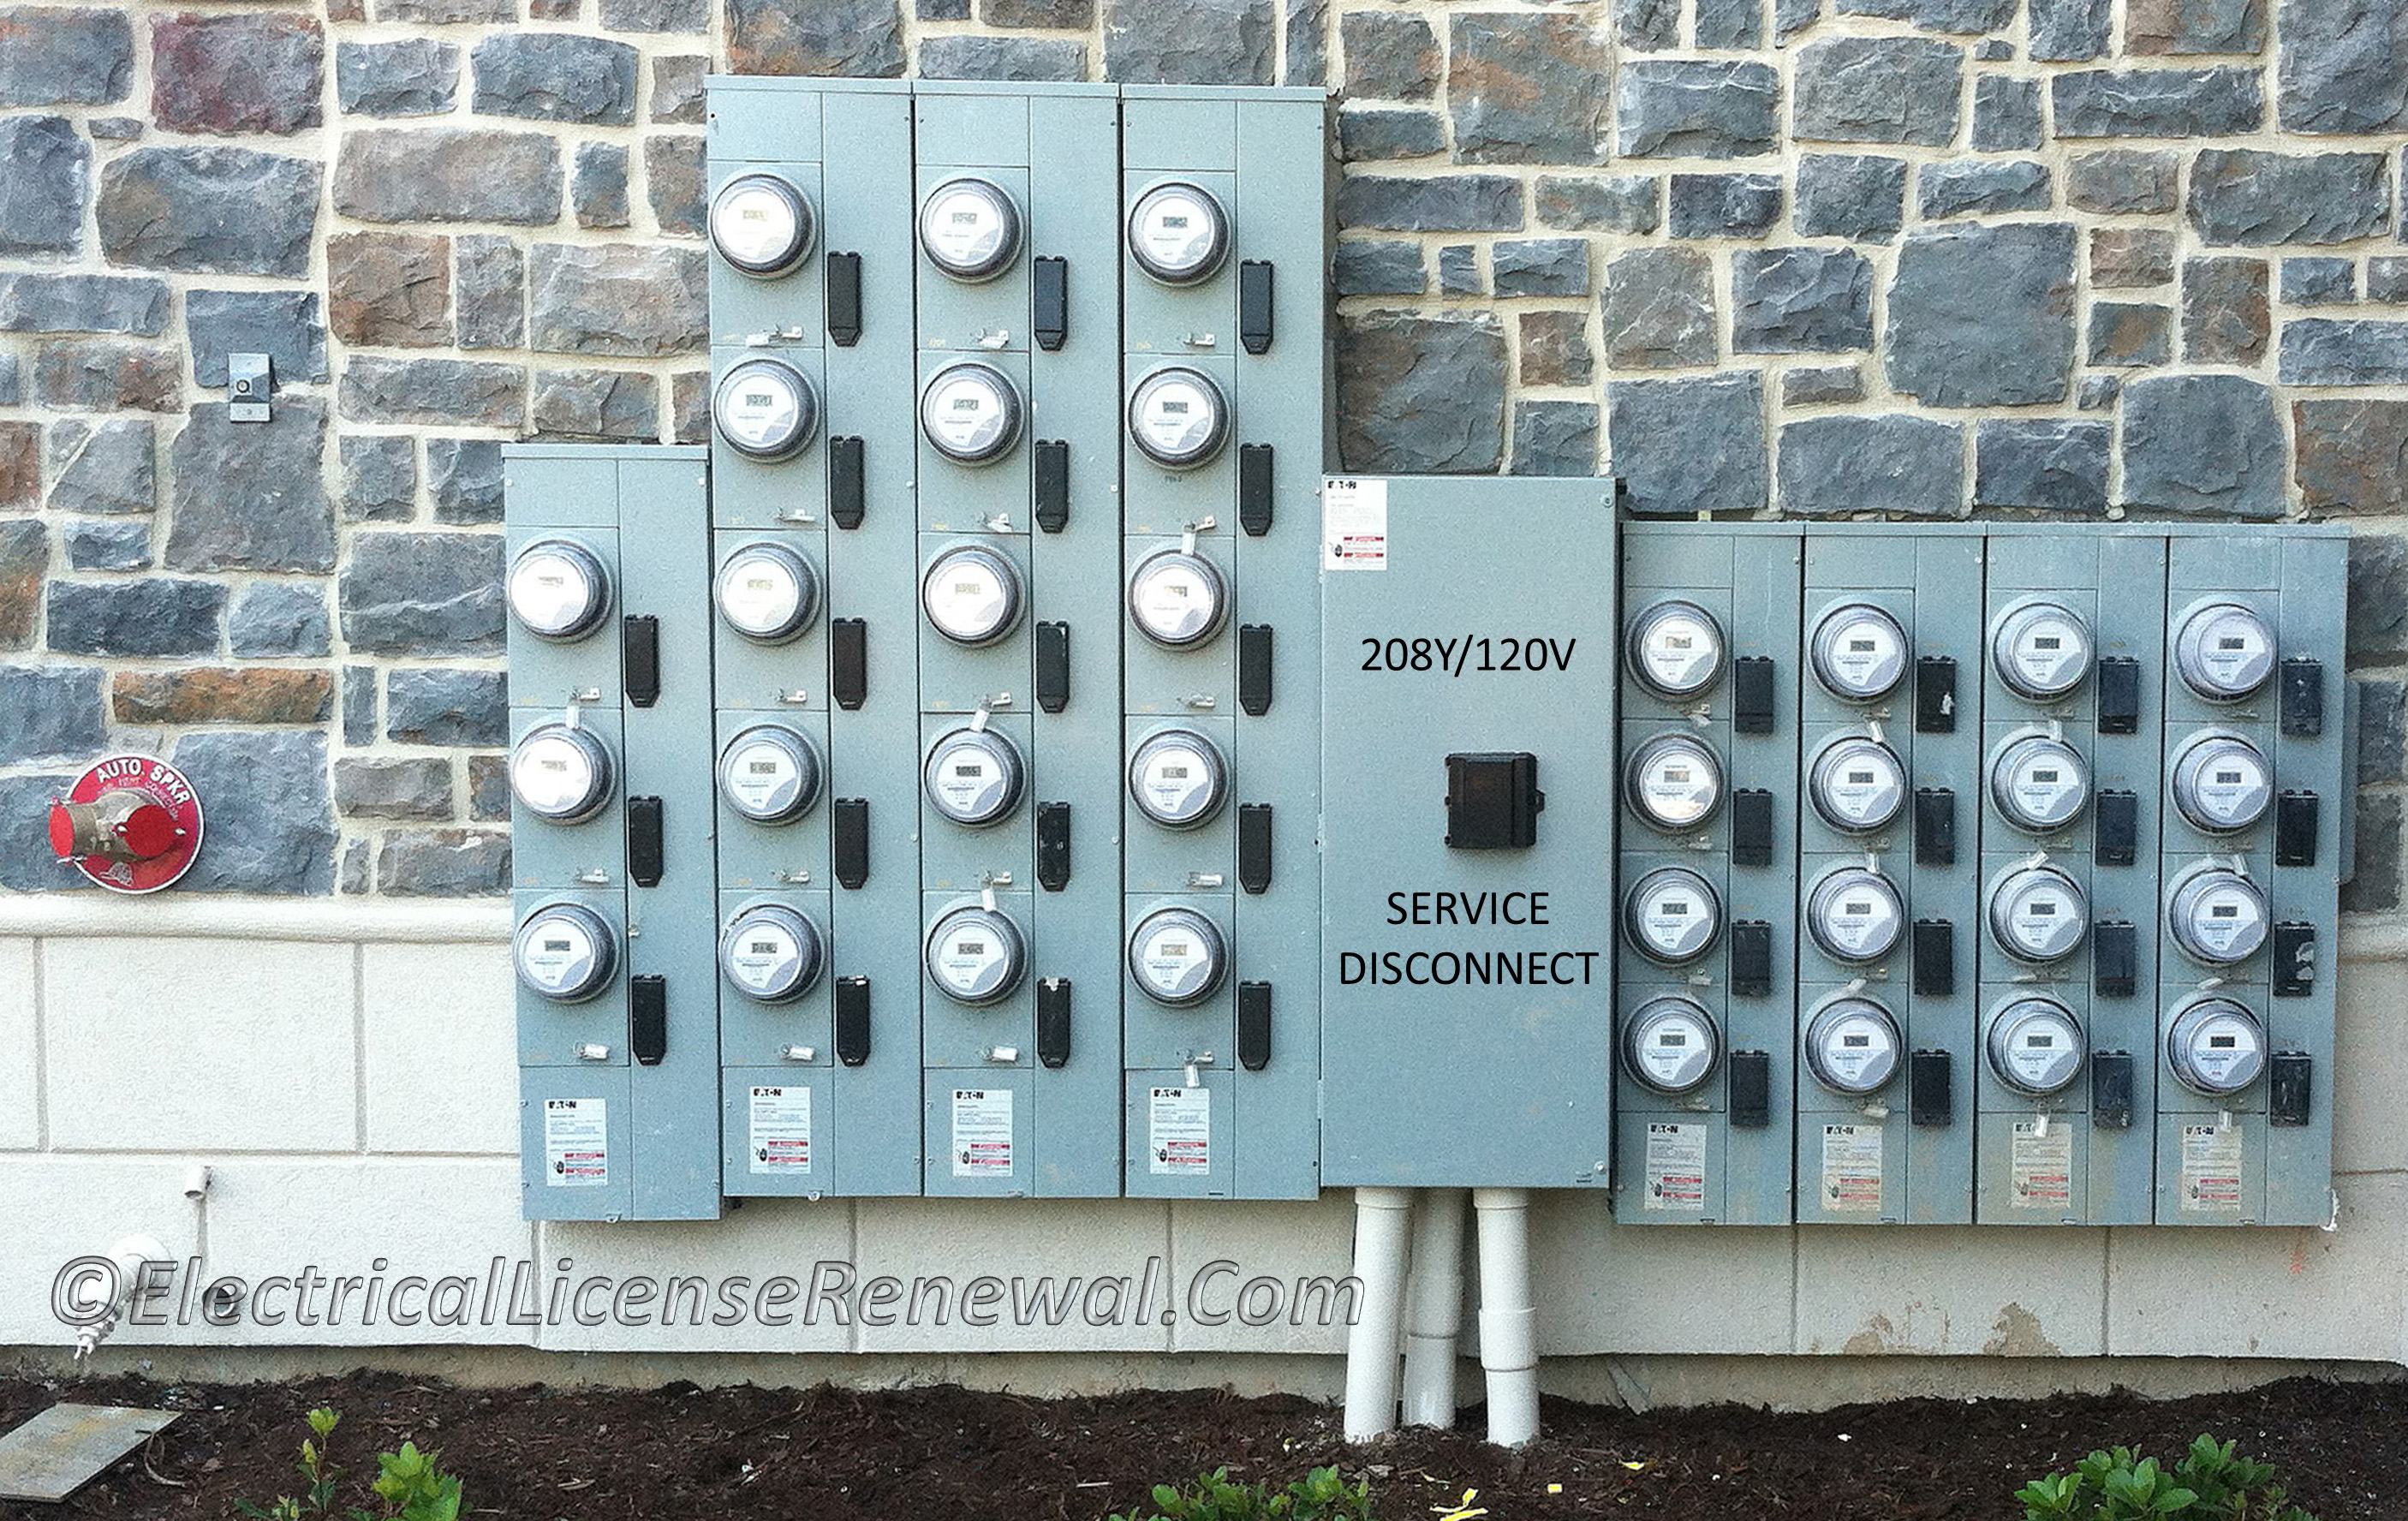 Nec Single Phase Meter Wiring Diagram Trusted Schematics Disconnect 310 15b7 Dwelling Services And Feeders Residential Electrical